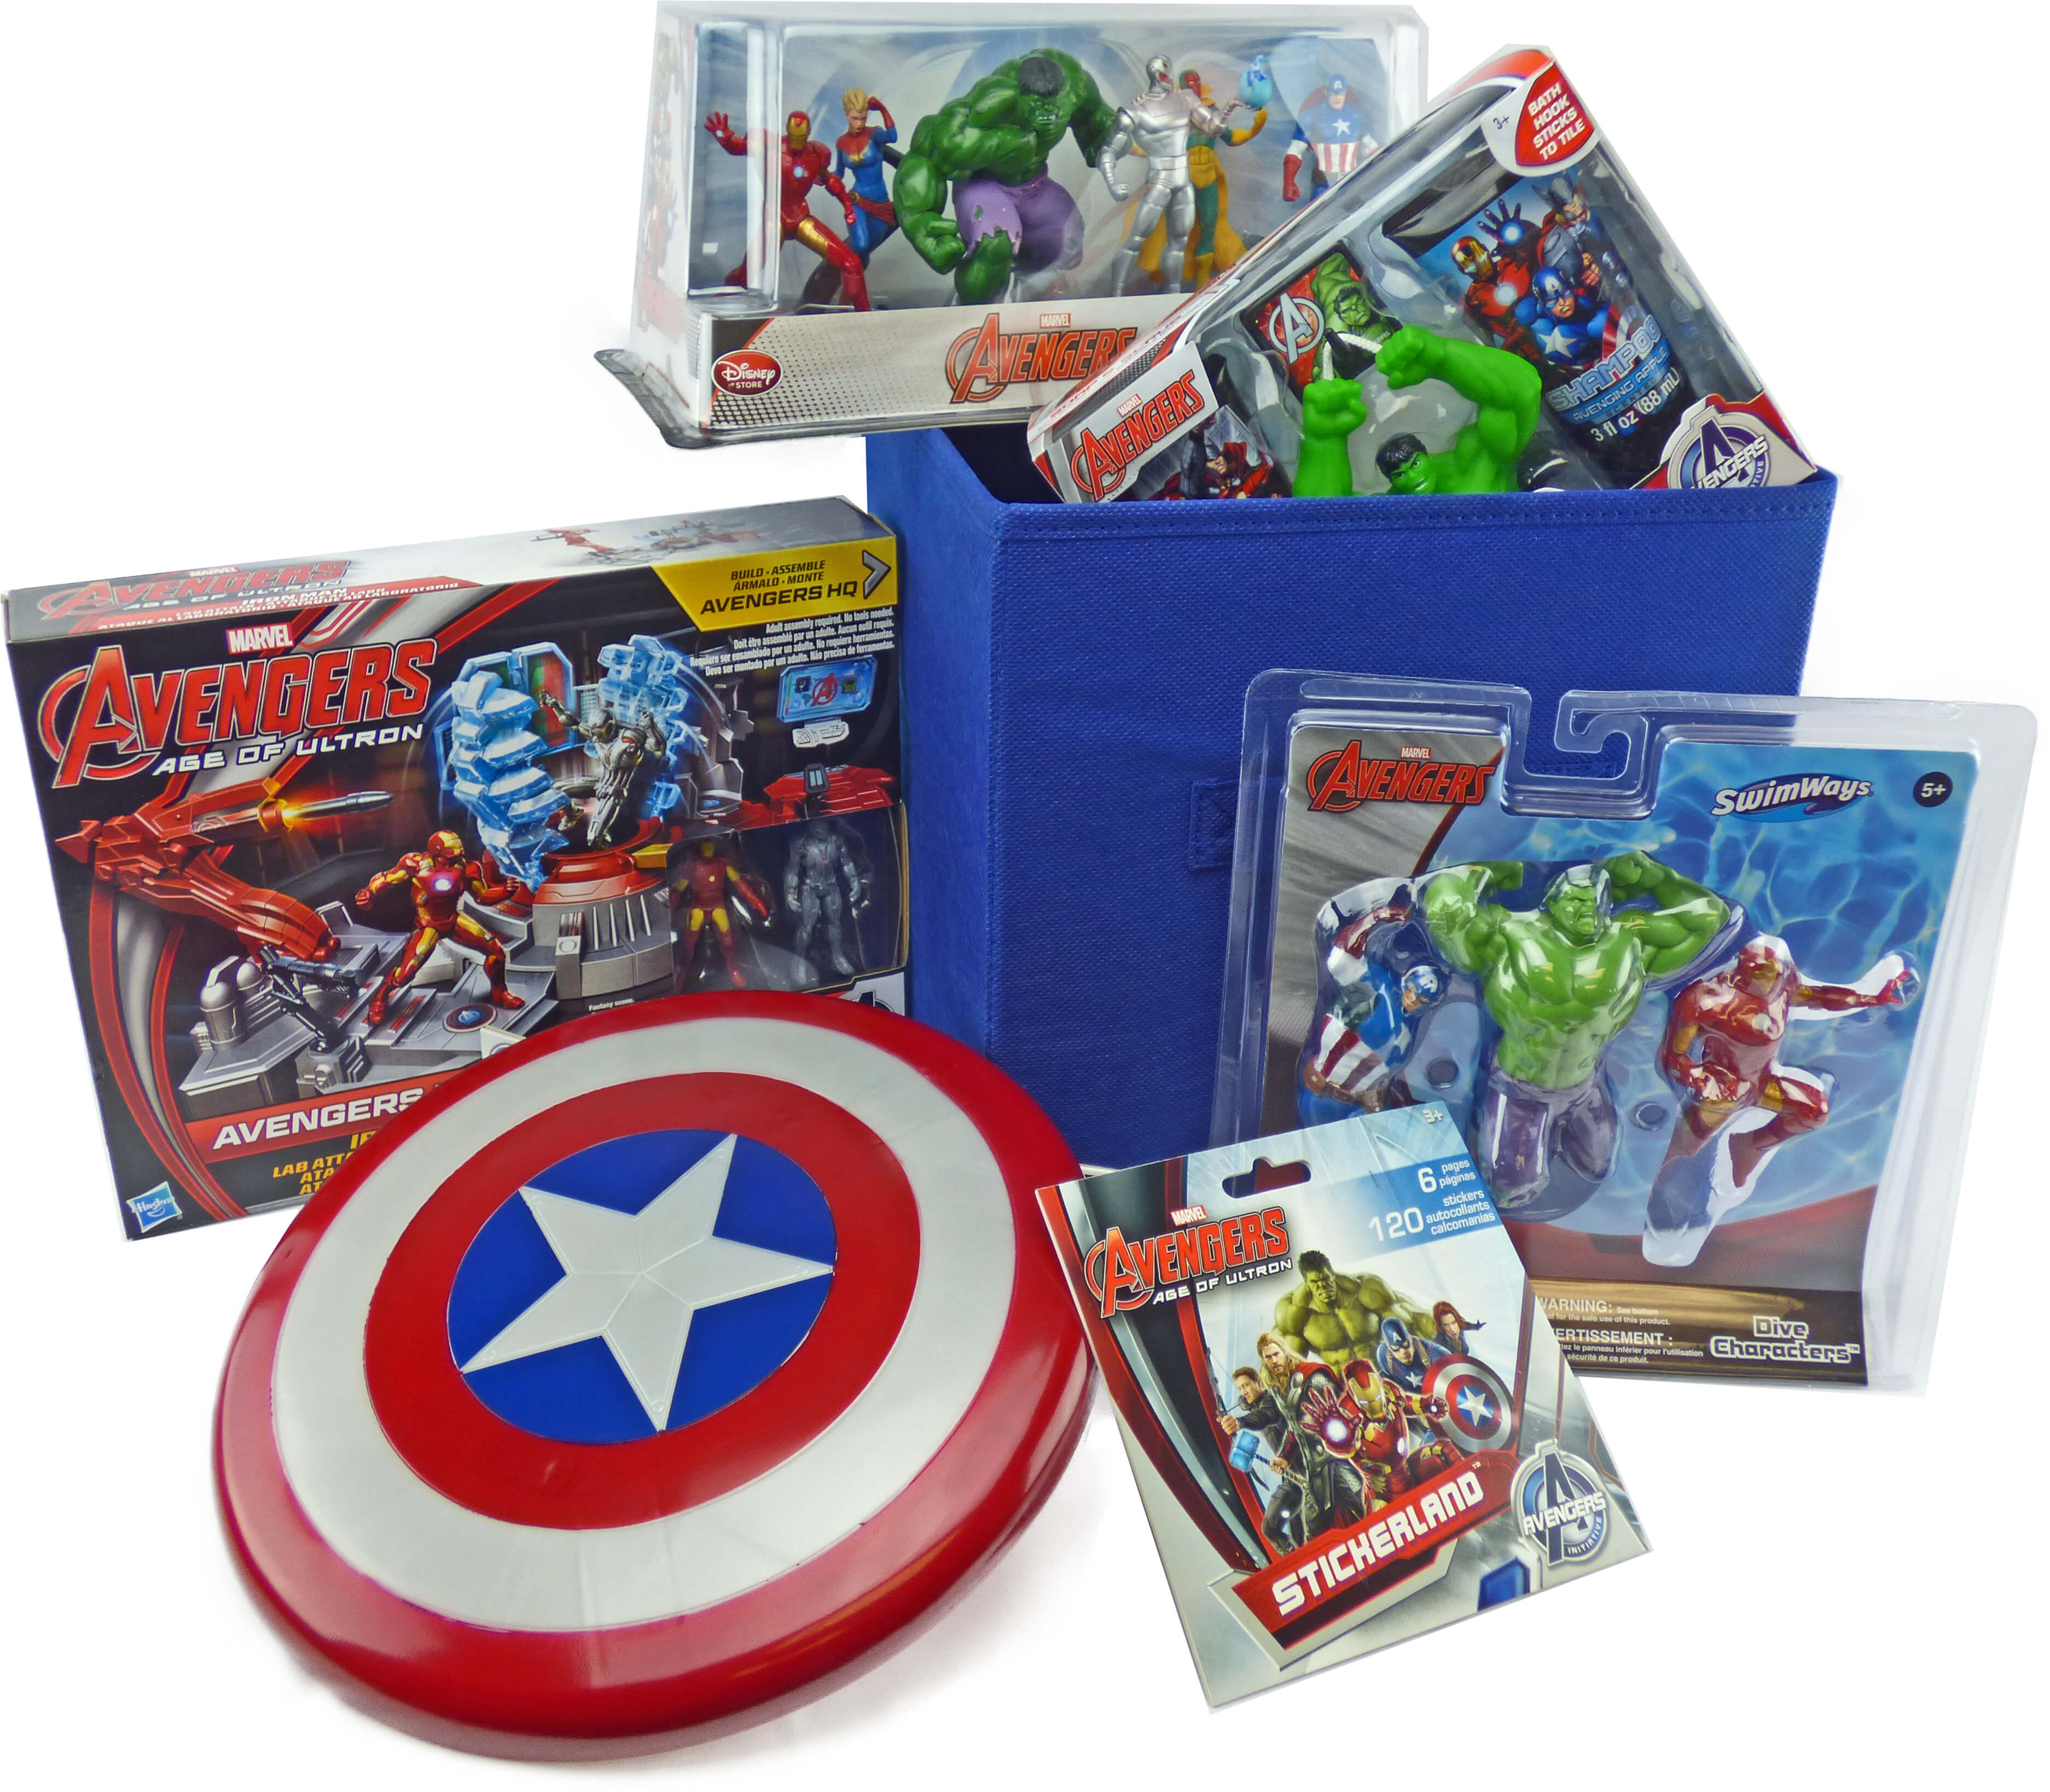 05 Avengers crate